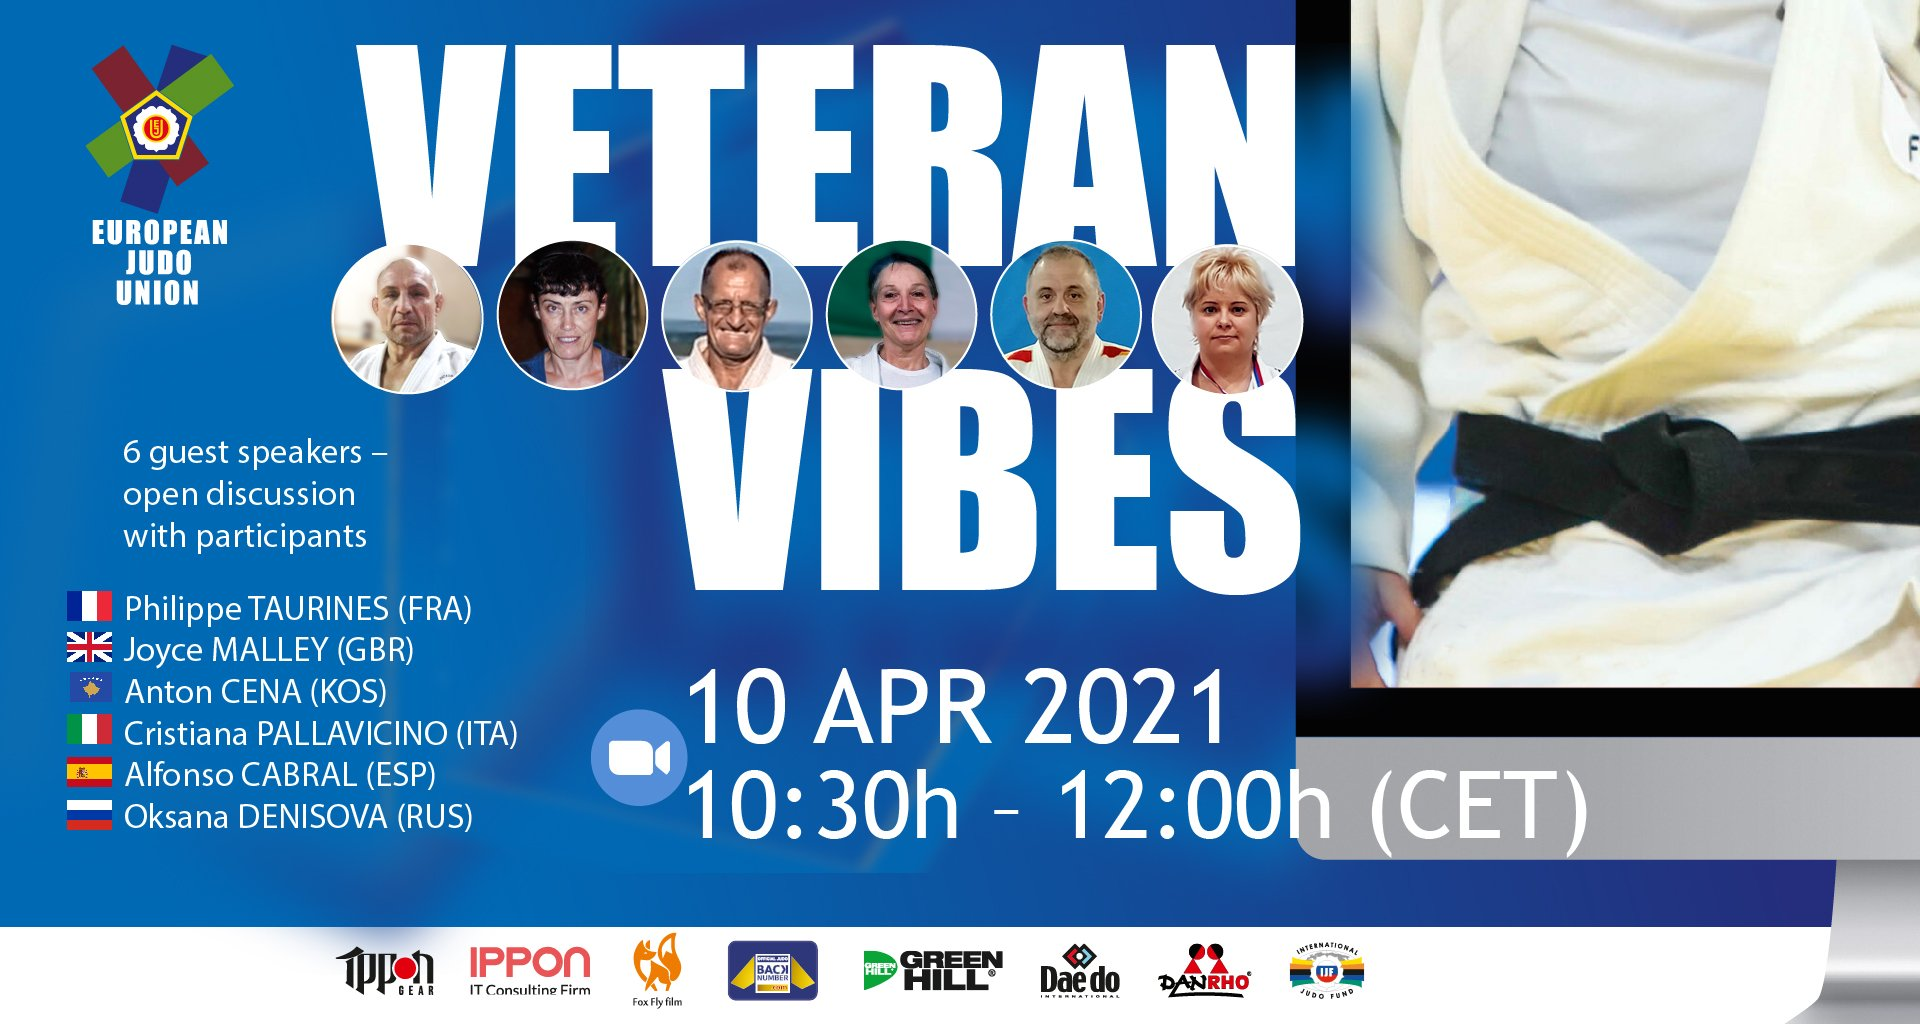 VETERAN VIBES INVITES PARTICIPANTS TO TOMORROWS EVENT